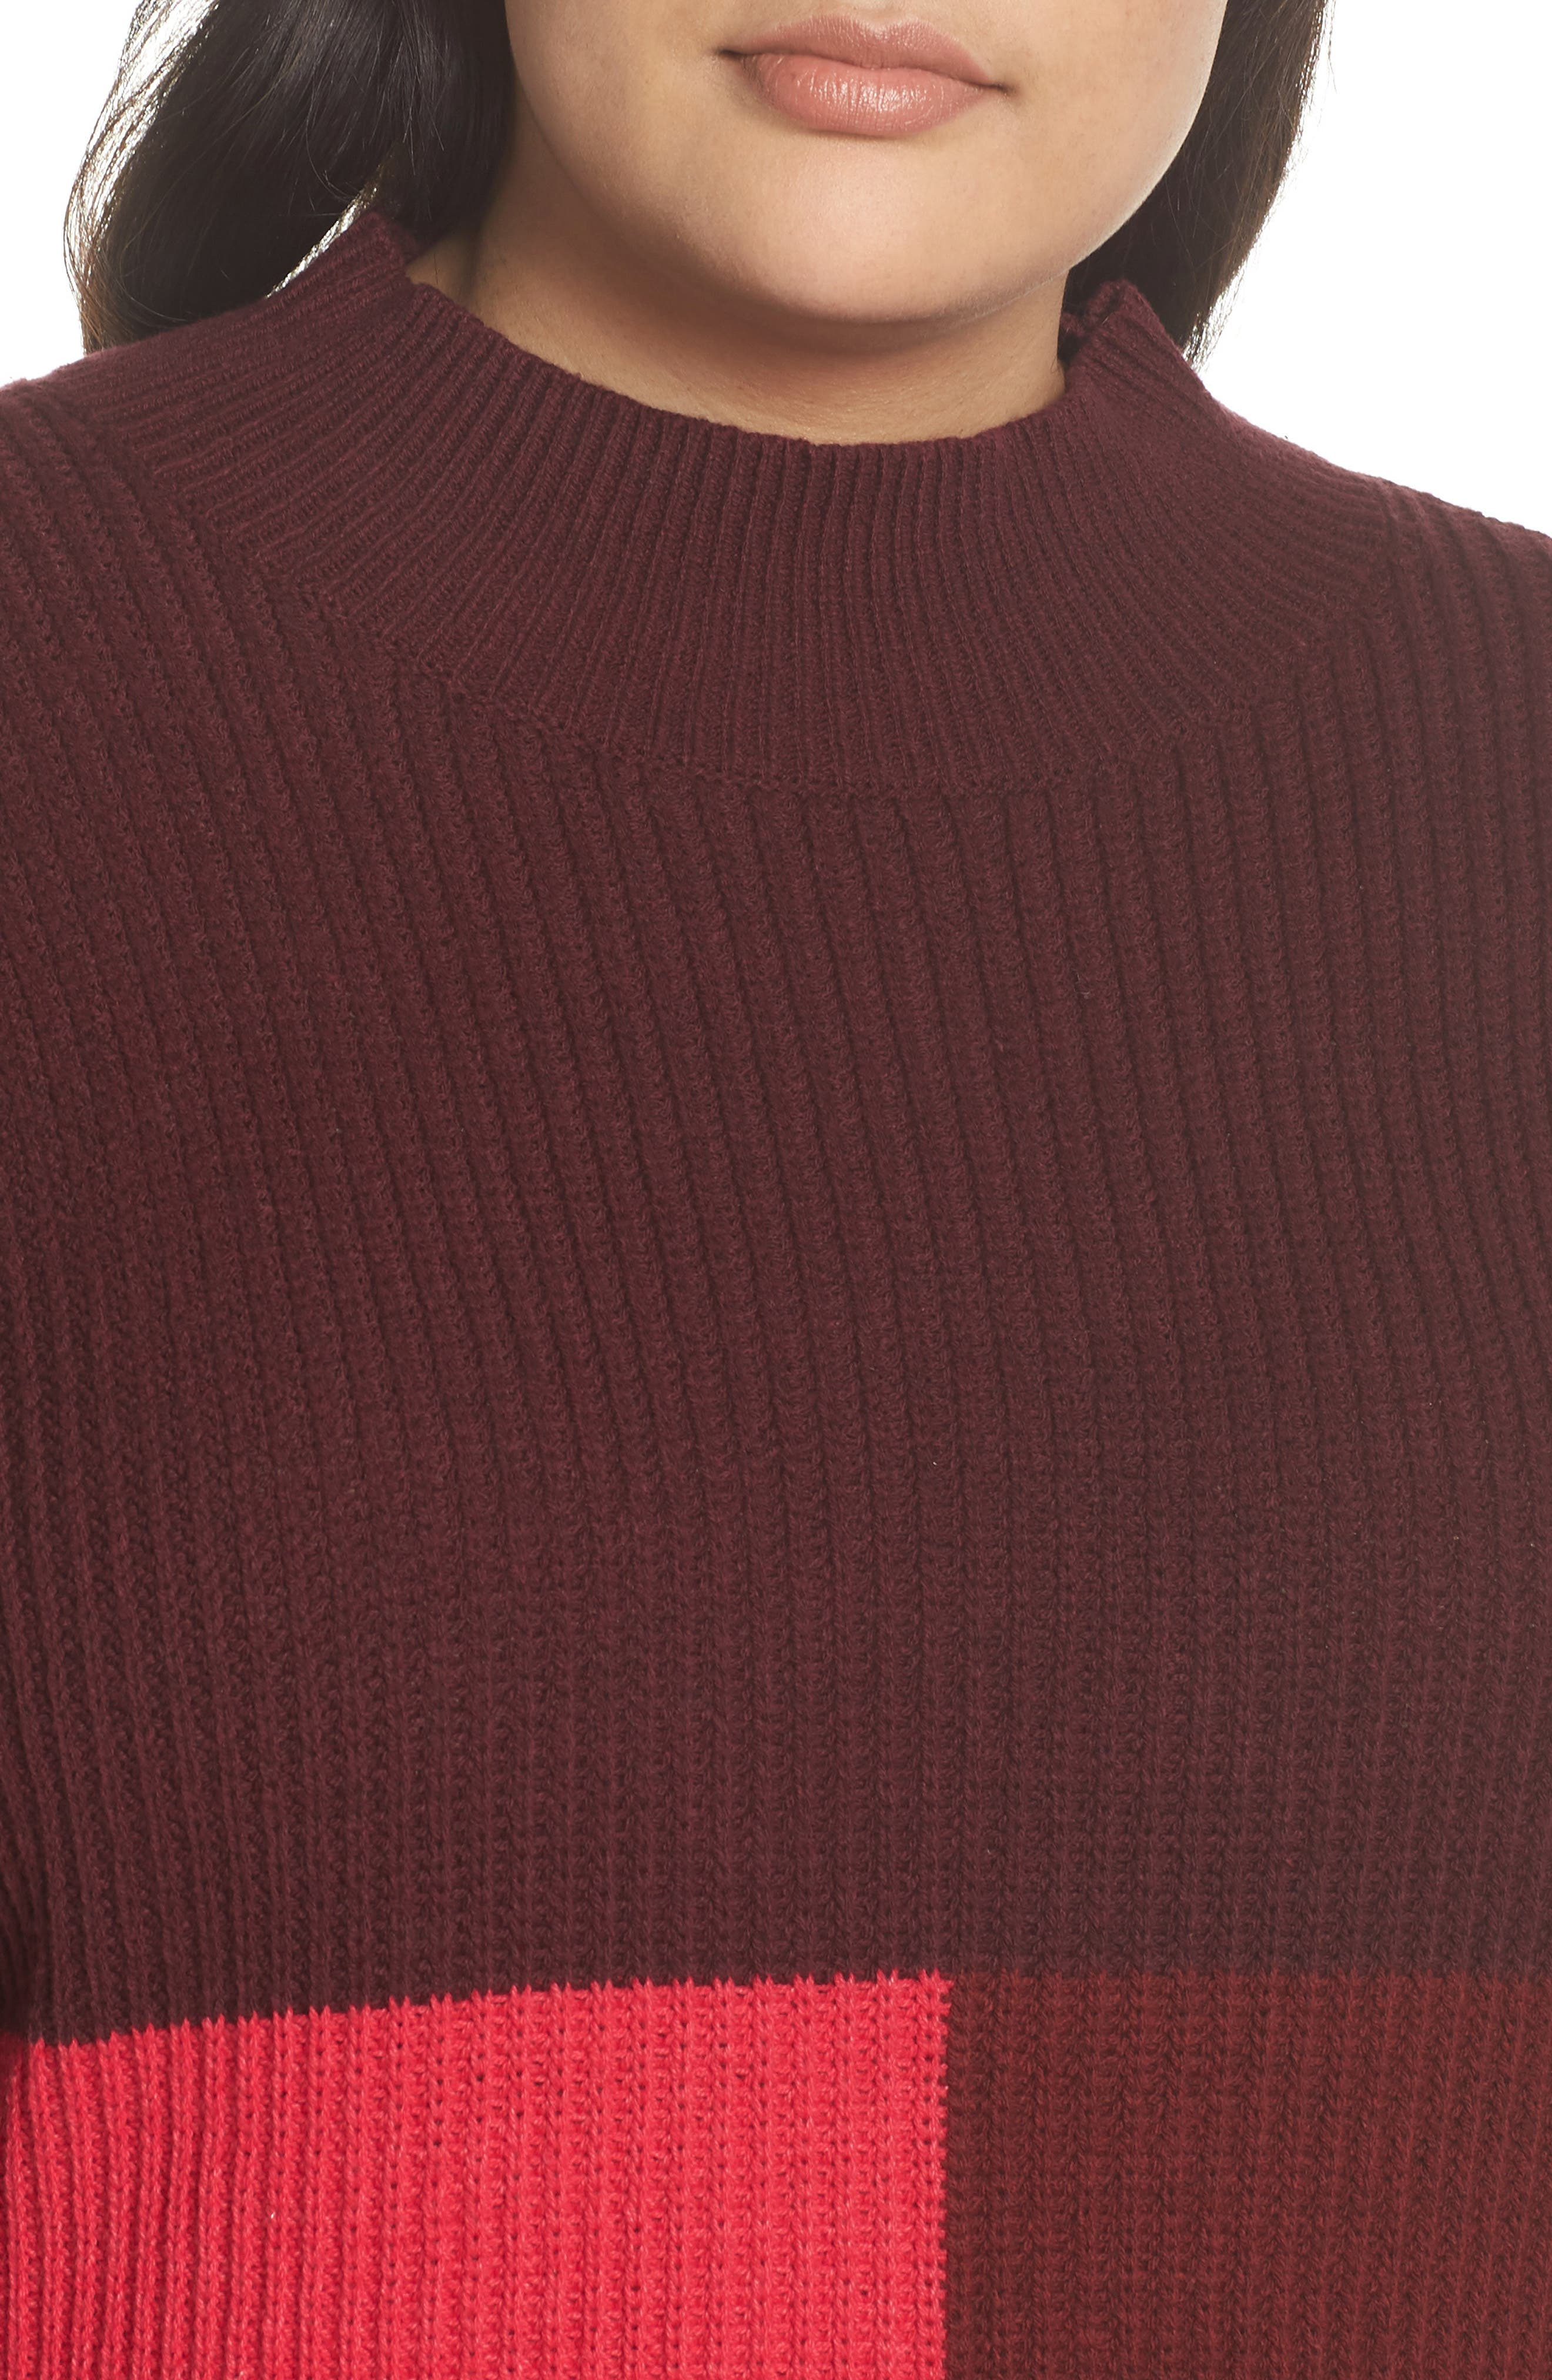 Mock Neck Colorblock Sweater,                             Alternate thumbnail 10, color,                             RED RUMBA COLORBLOCK